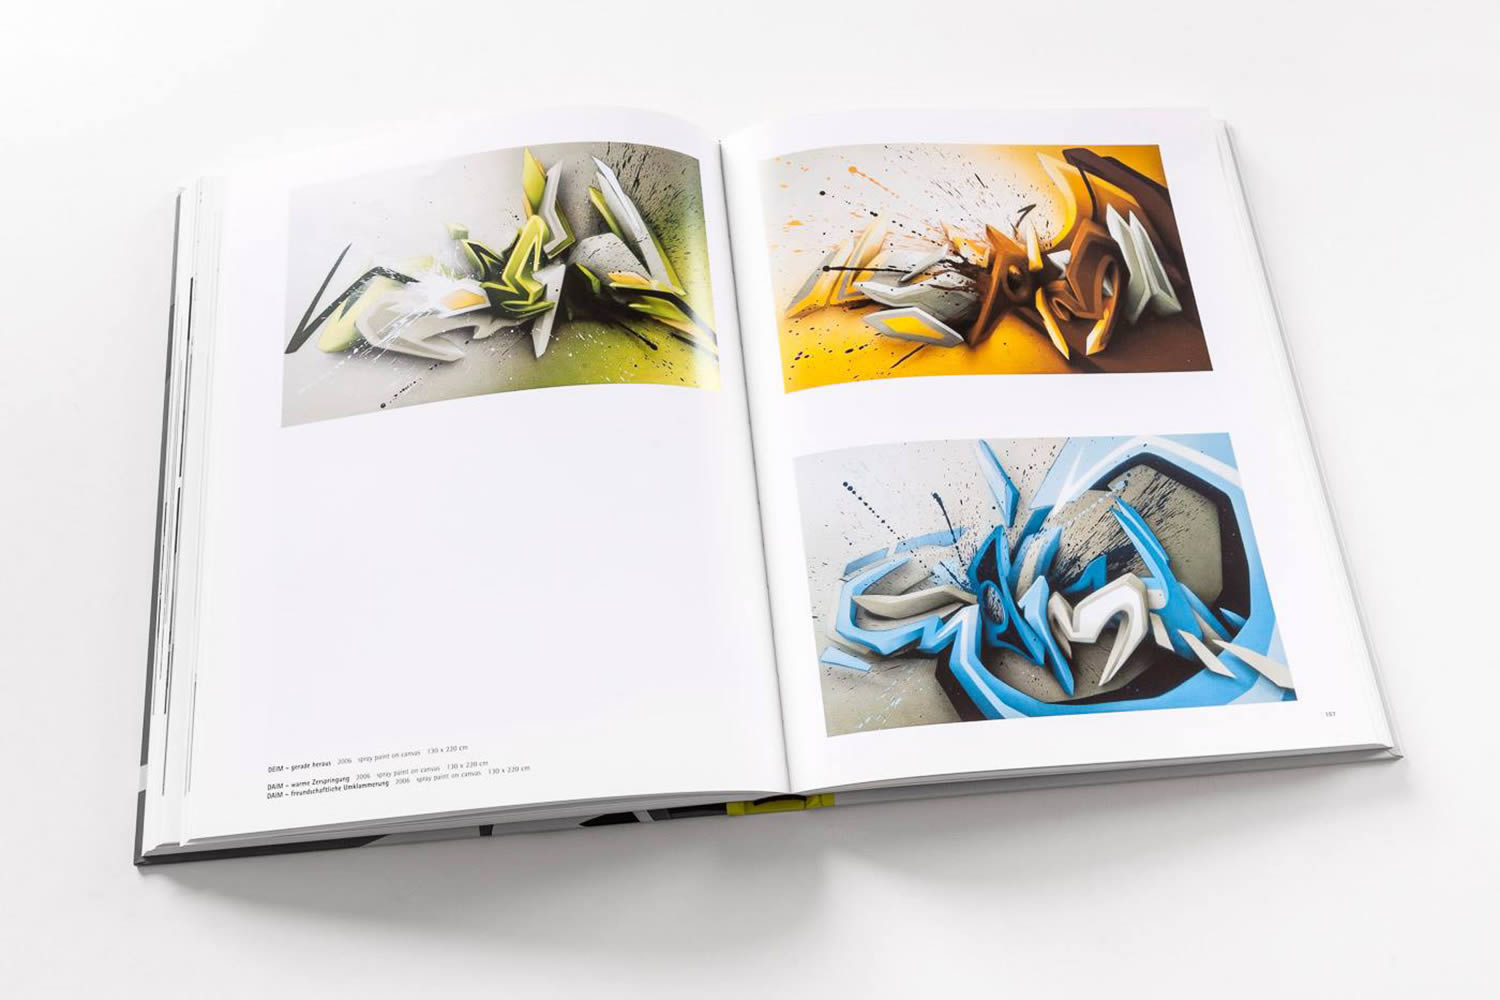 daim's art featured in book